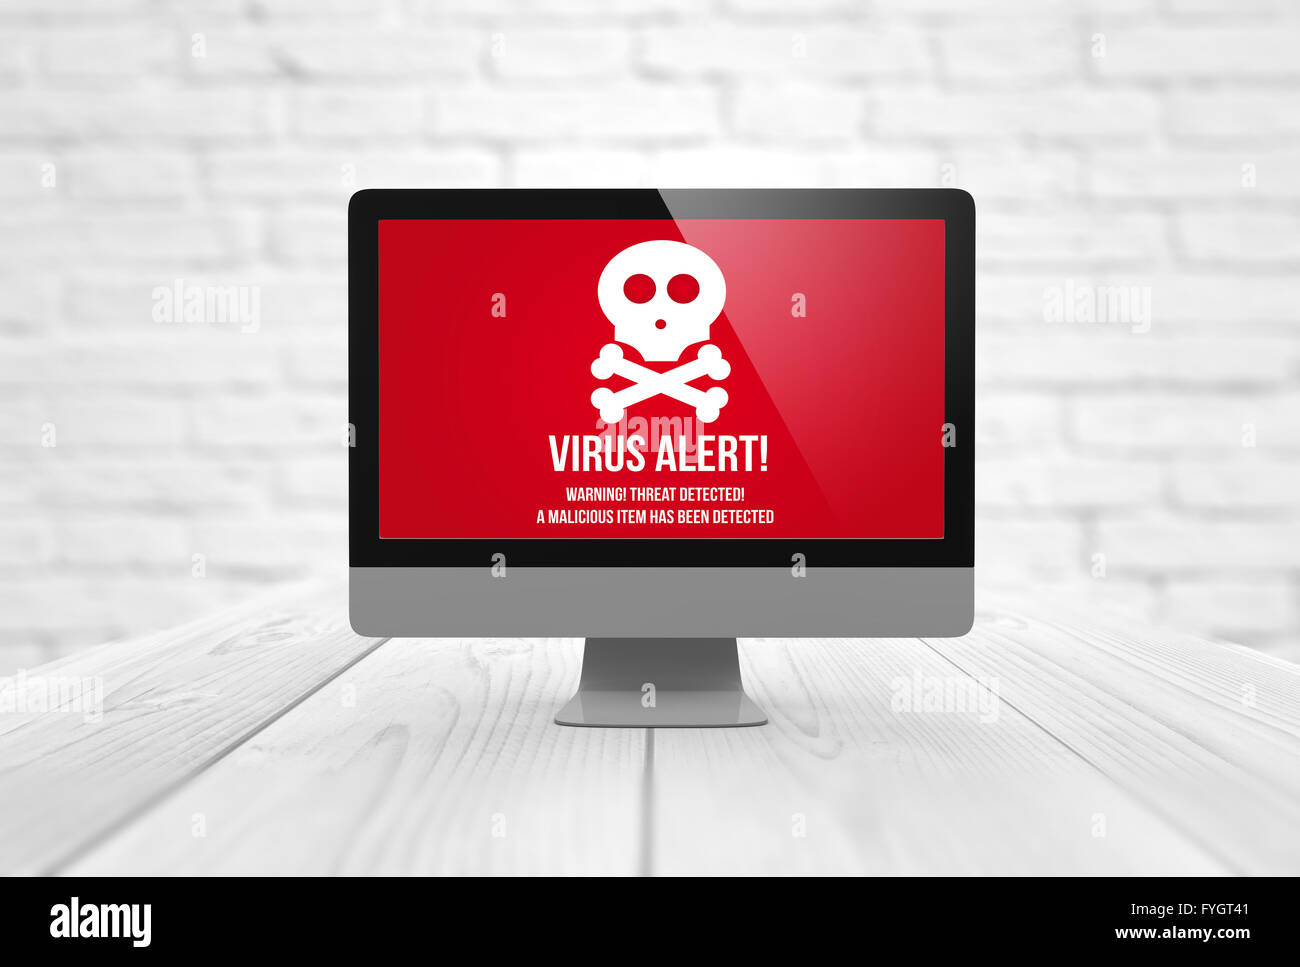 risks concept: computer digital generated with virus alert on the screen. All screen graphics are made up. - Stock Image